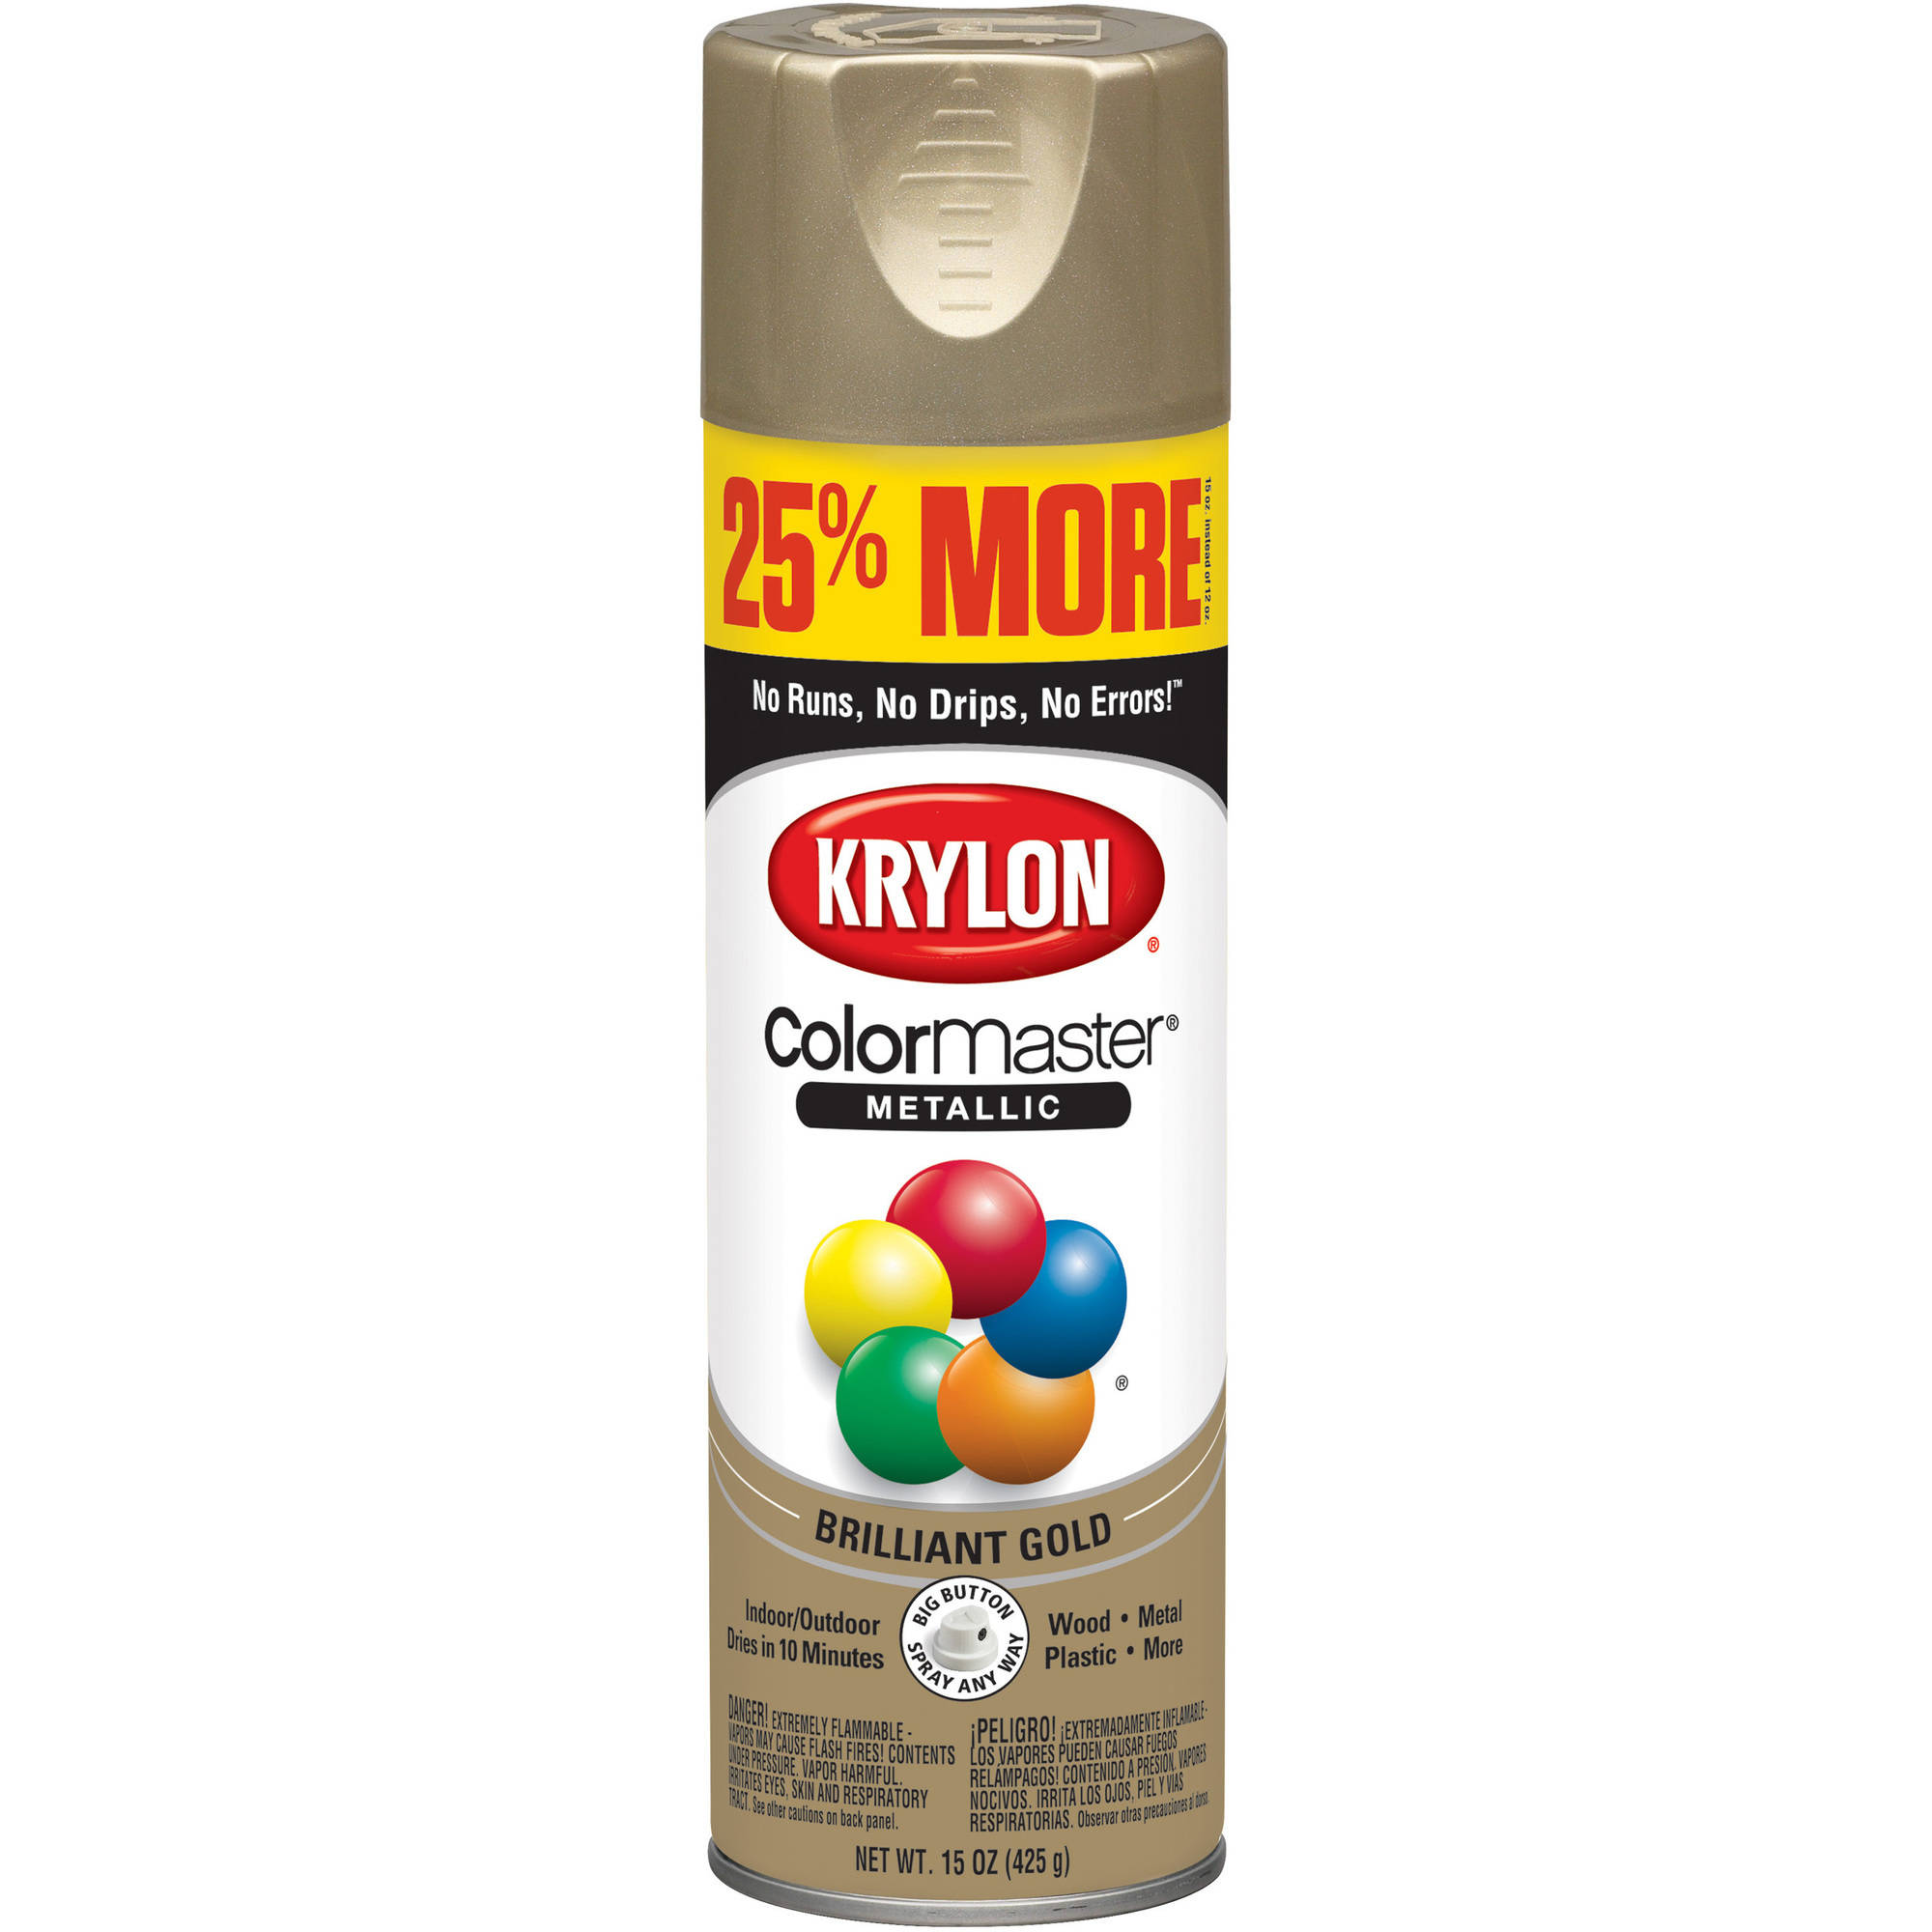 Painting miniatures color master primer - Krylon Colormaster Paint Primer Metallic Gold